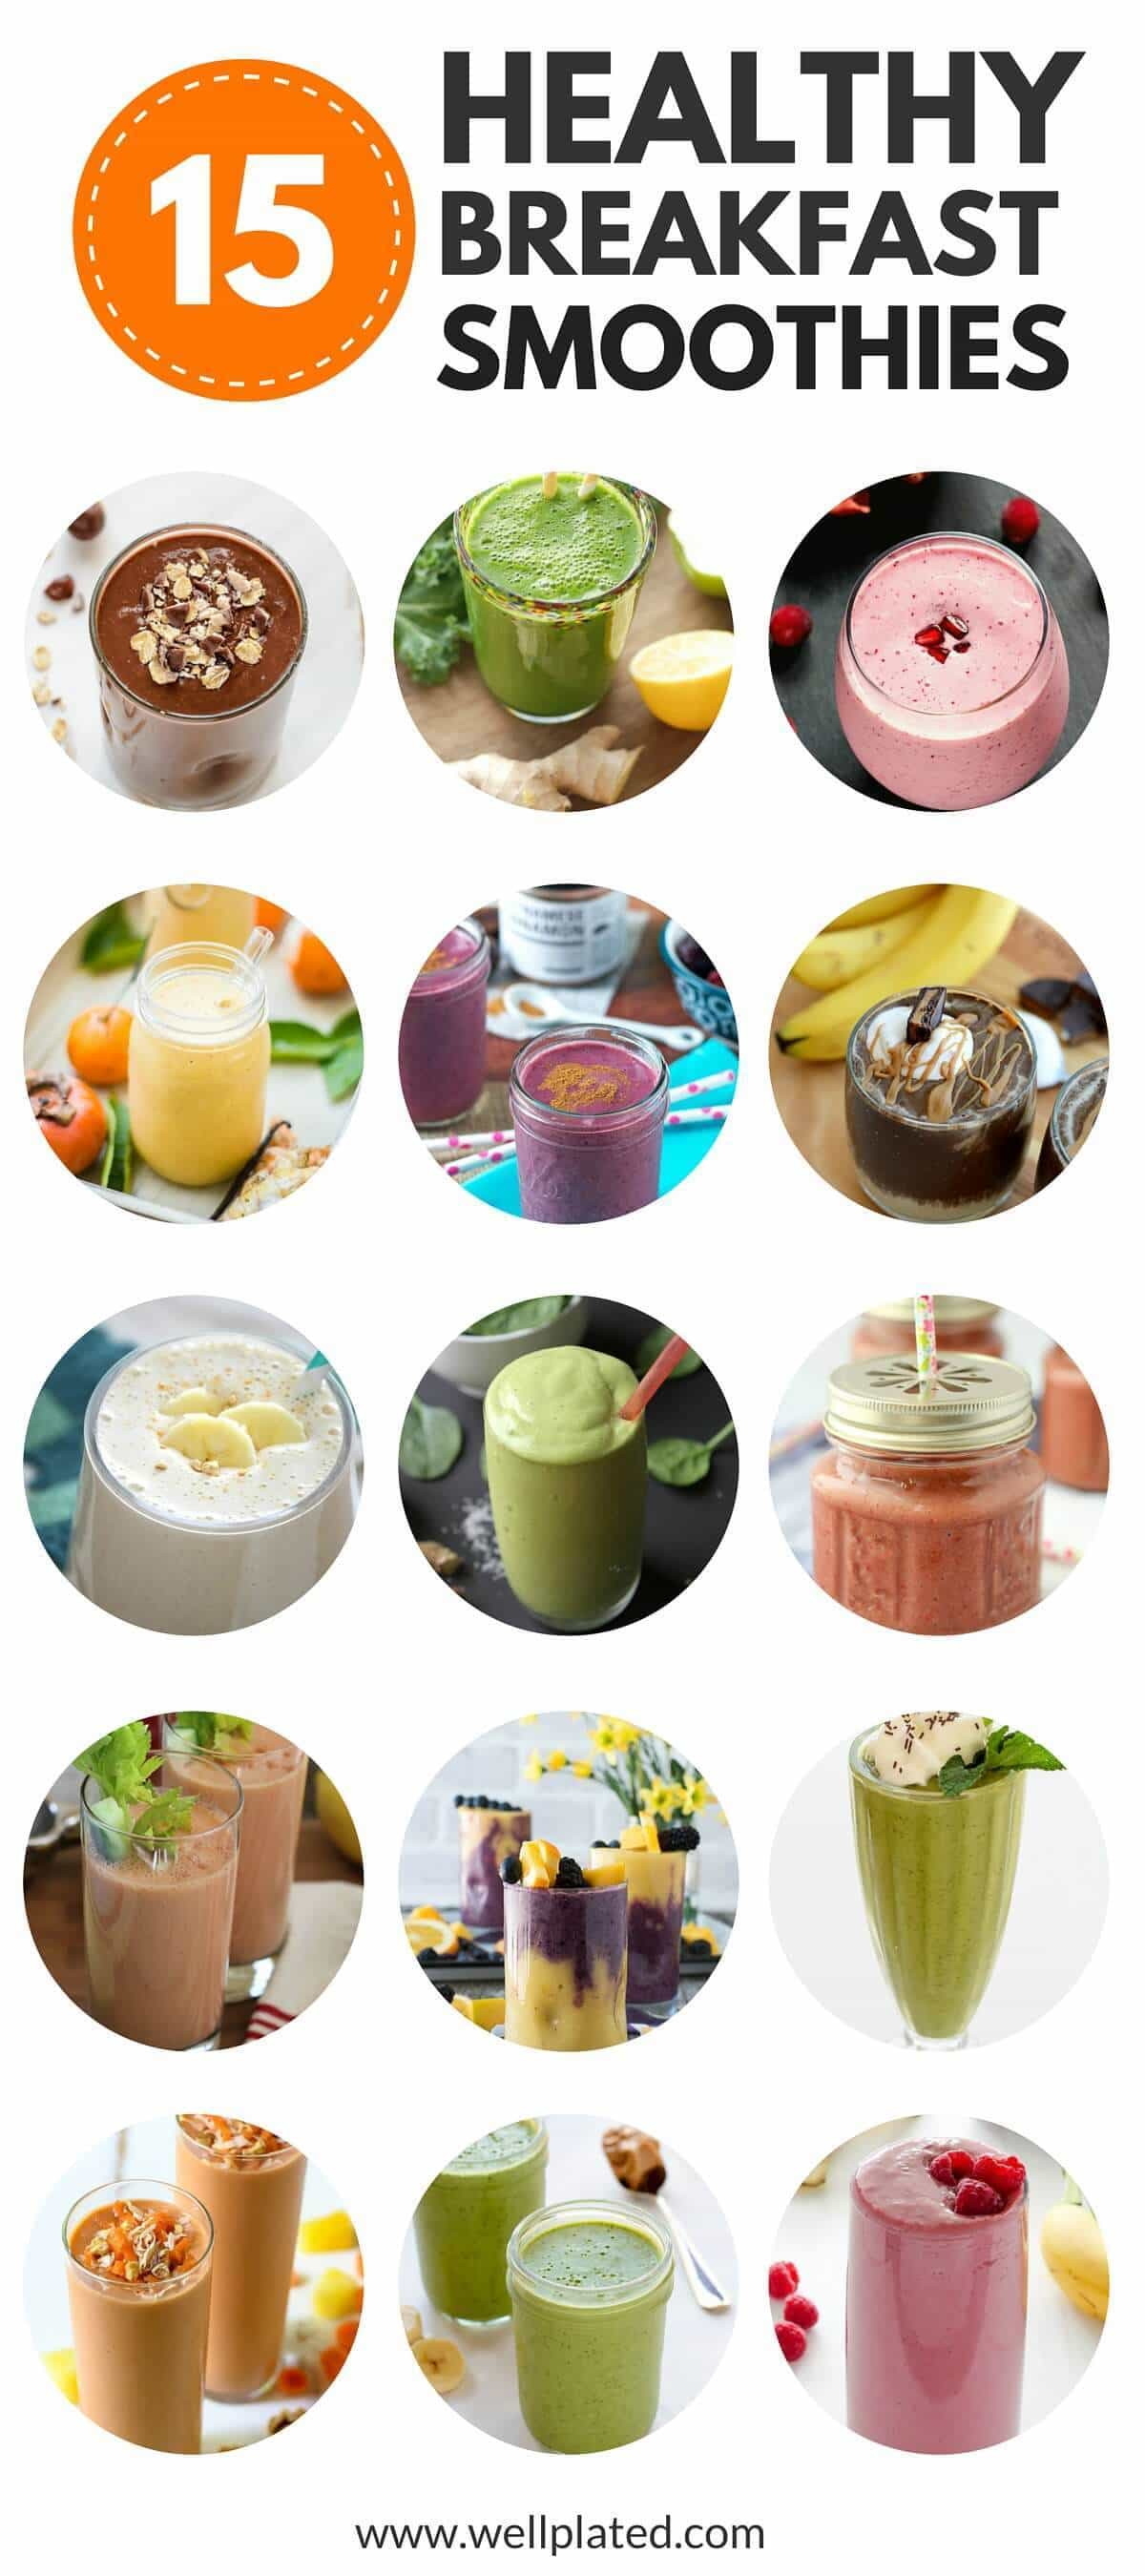 Smoothies Recipes Healthy  The Best 15 Healthy Breakfast Smoothies